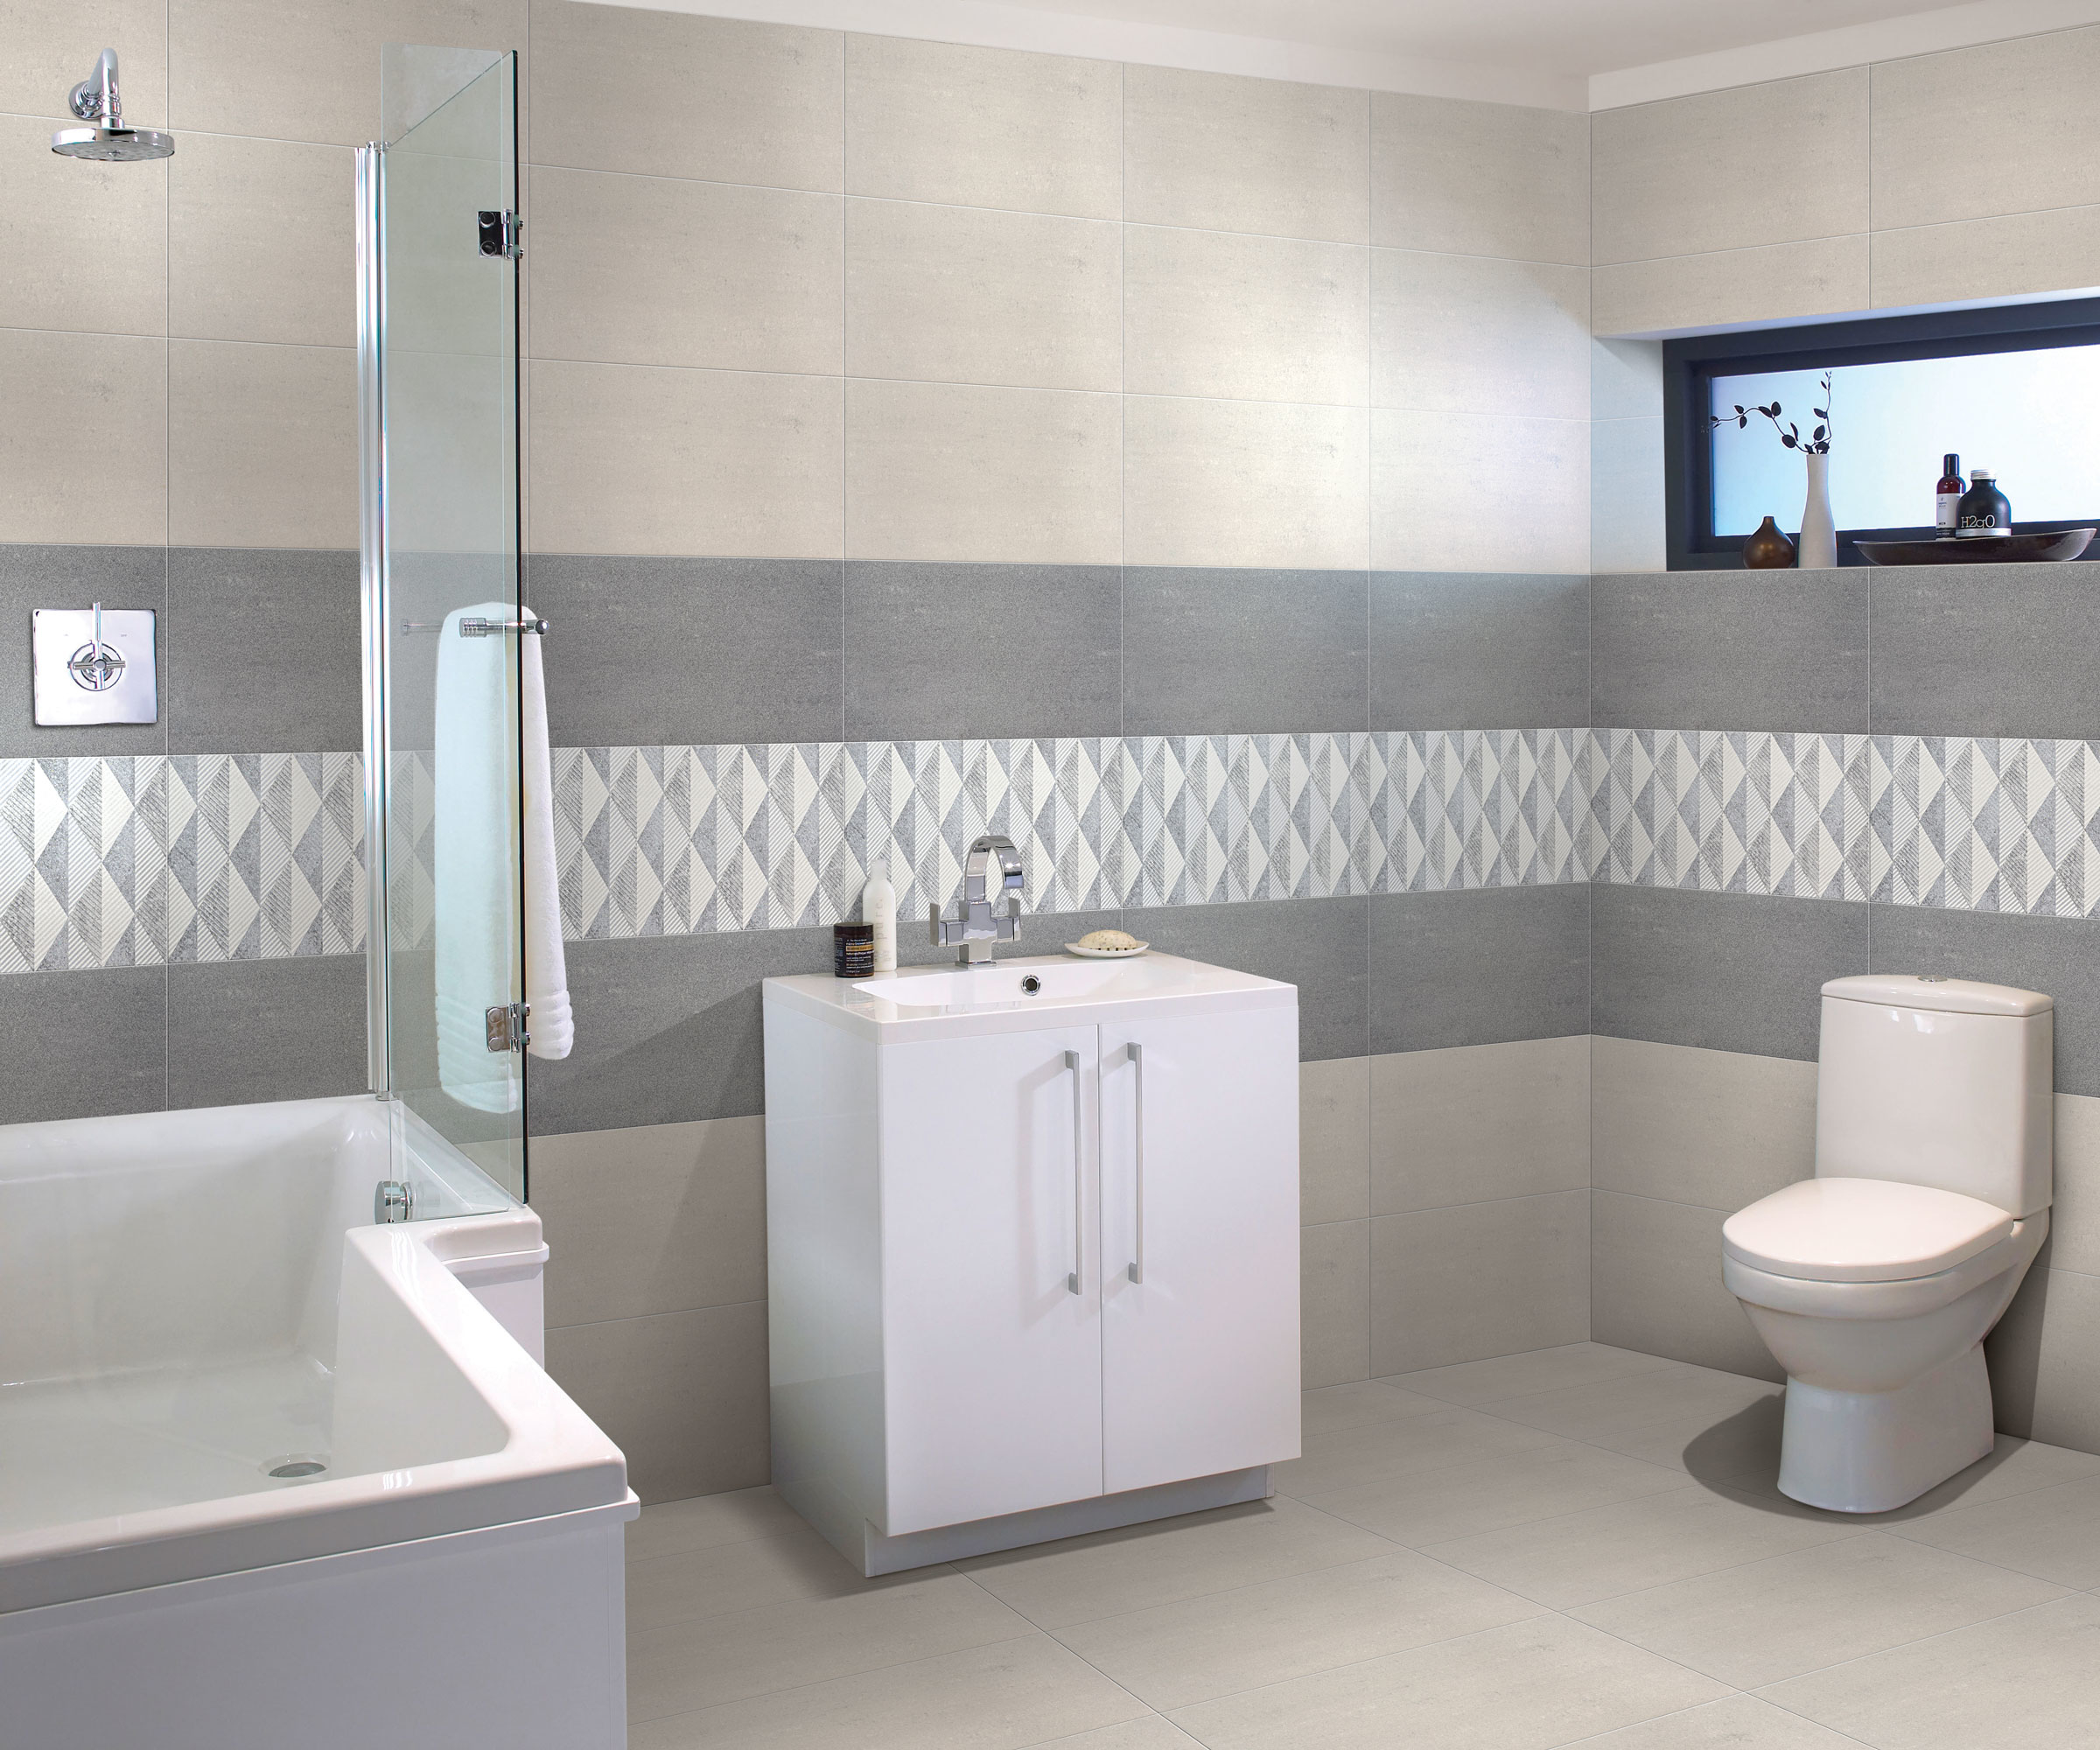 Bathroom Designs For Home India Elegant Small Design Ideas Picture Best  Collection